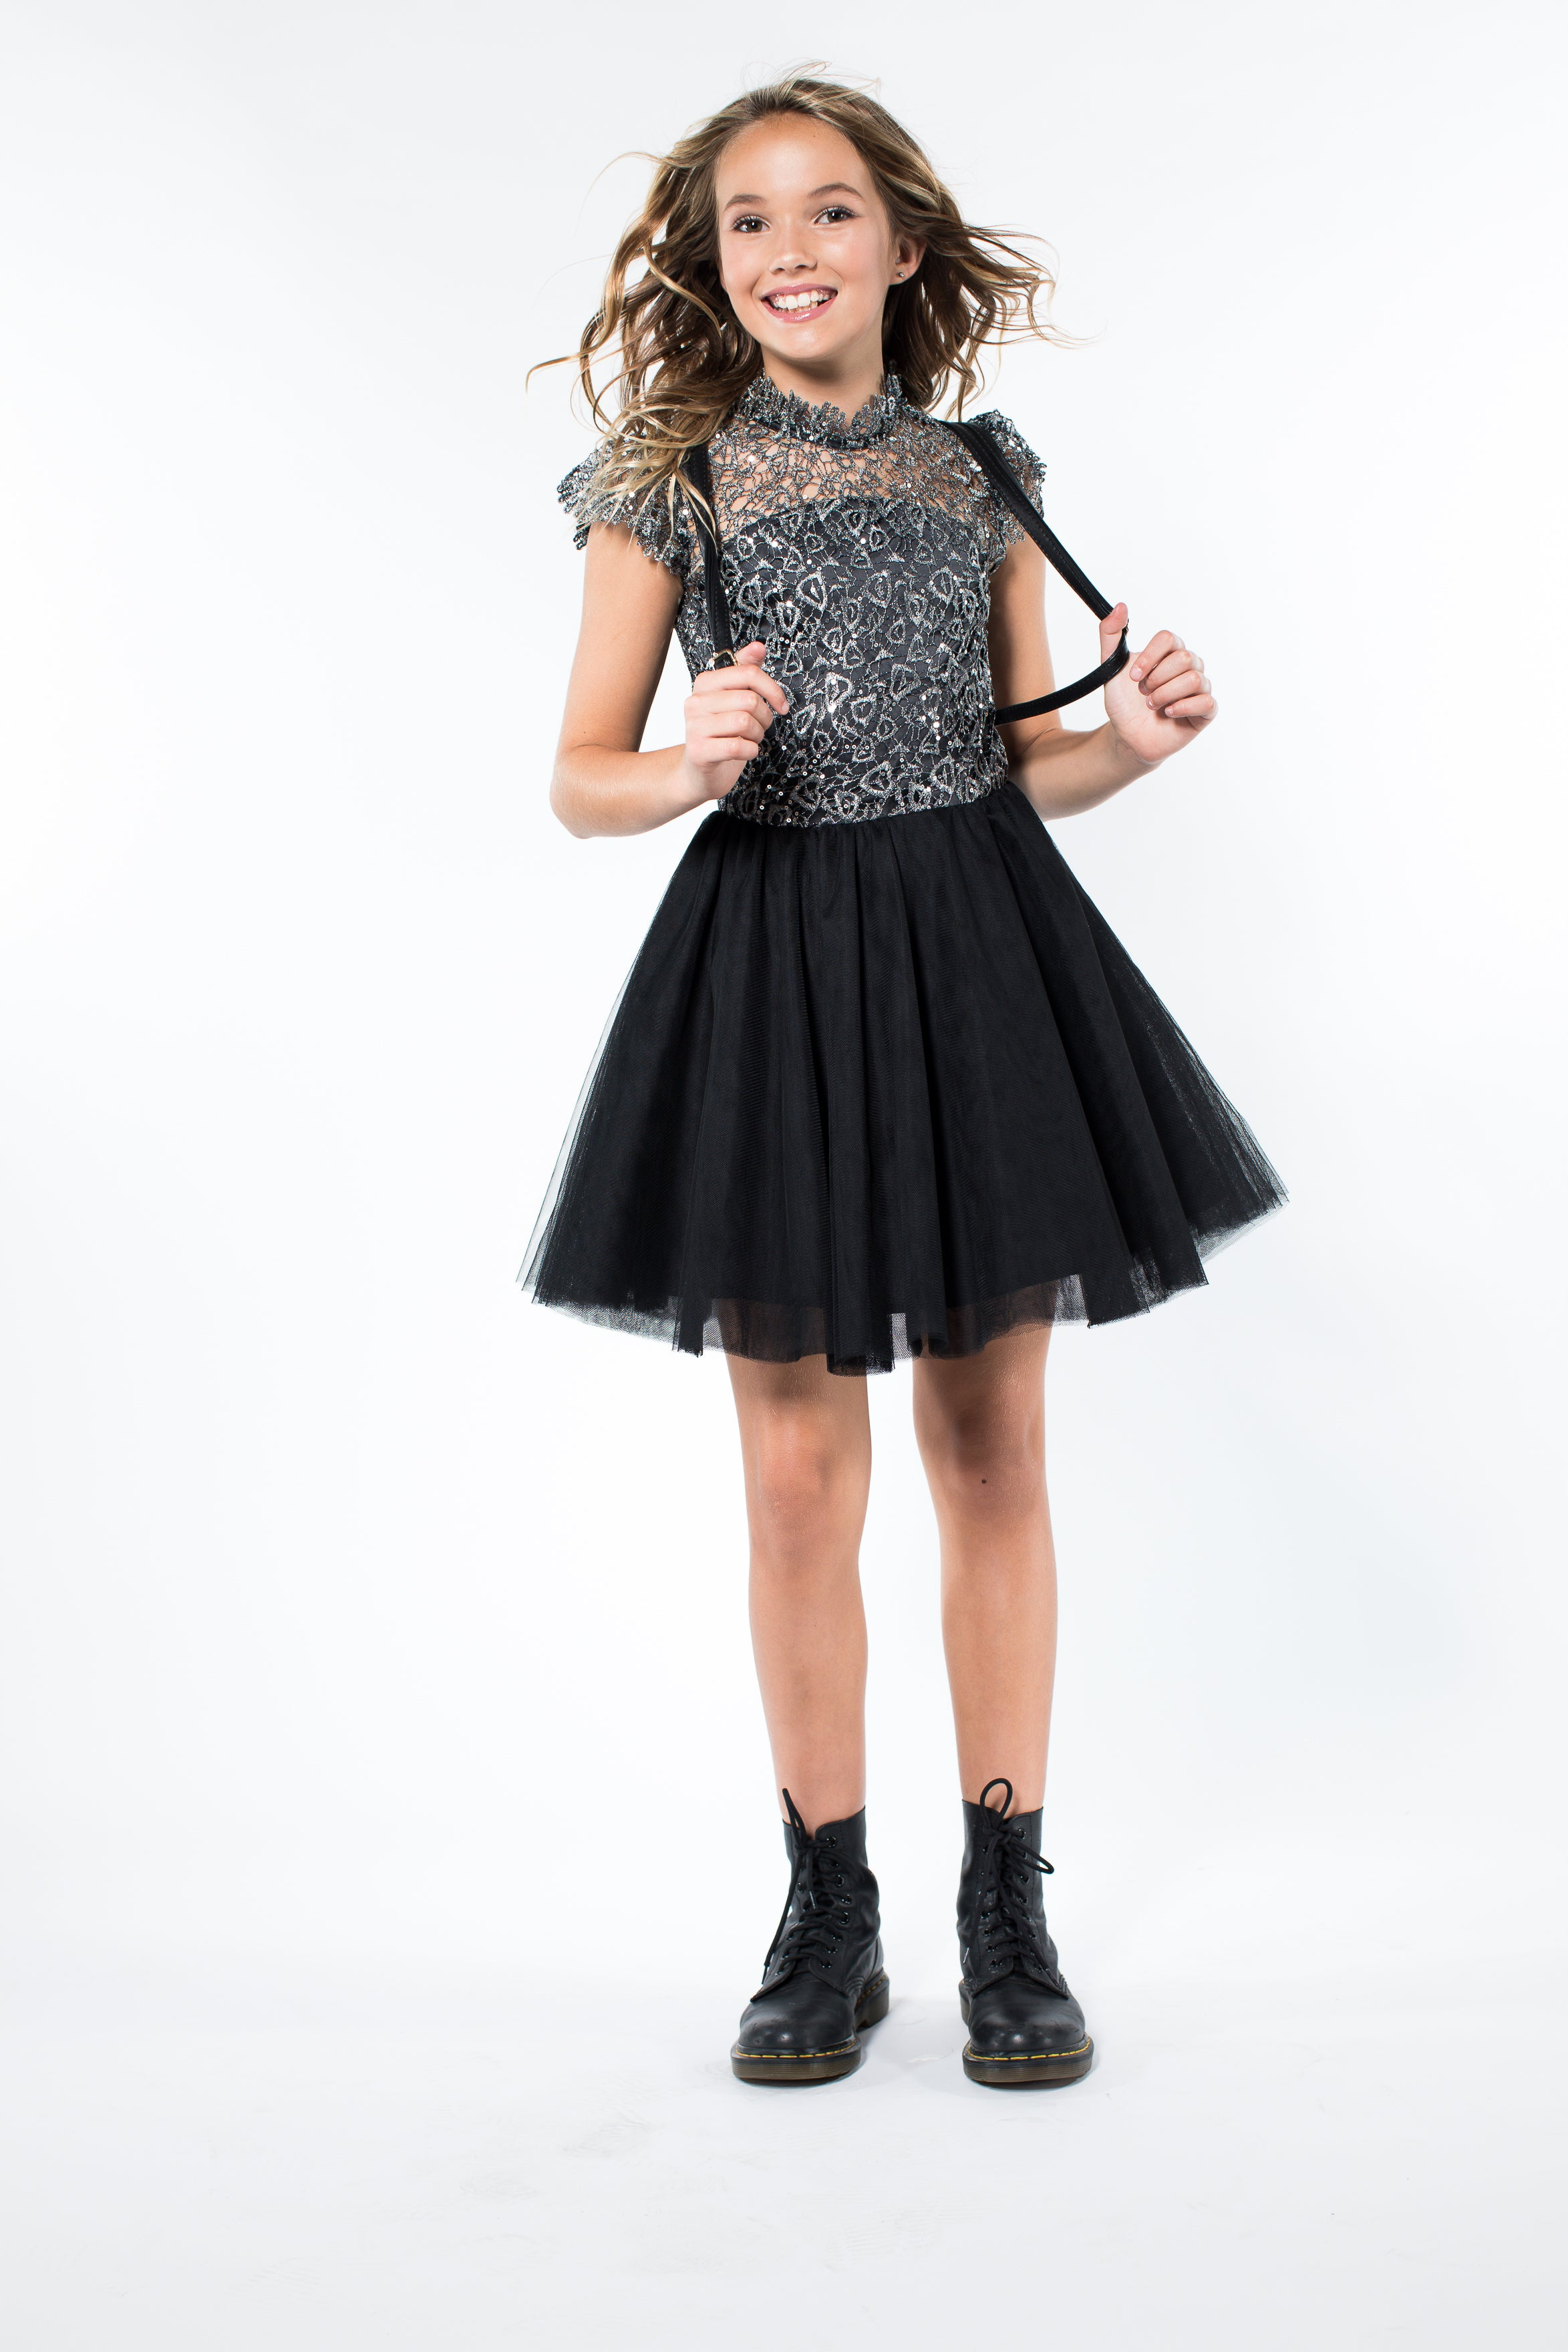 76ba45c11c3 Miss Behave Girls - Rocky Lace Sequin Top Tulle Dress